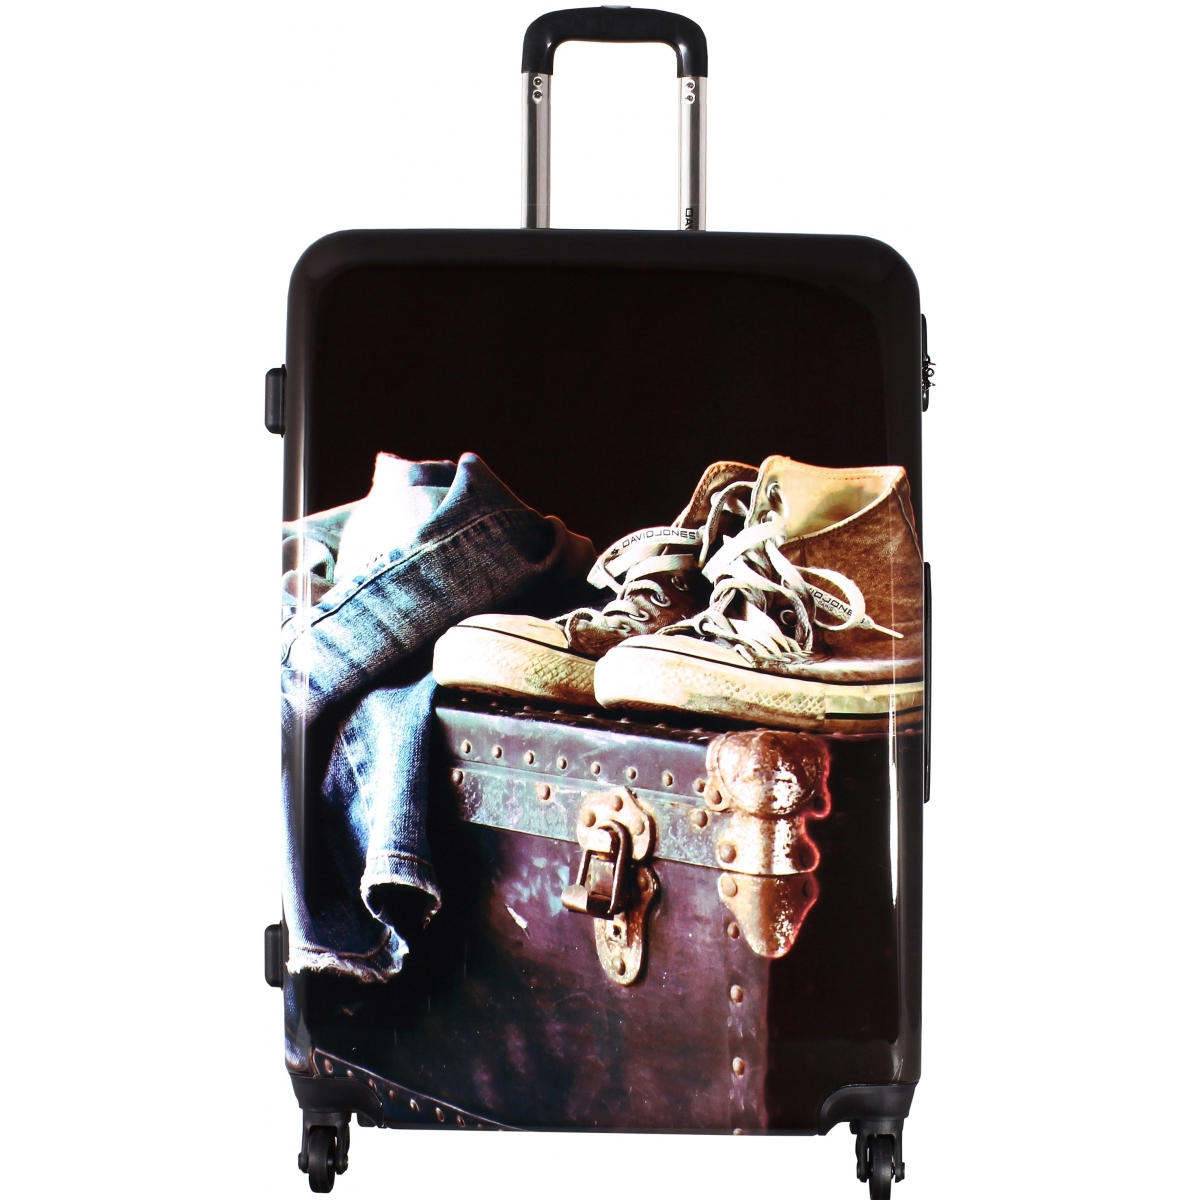 valise rigide david jones taille m 67cm ba20521m couleur principale jean valise pas cher. Black Bedroom Furniture Sets. Home Design Ideas